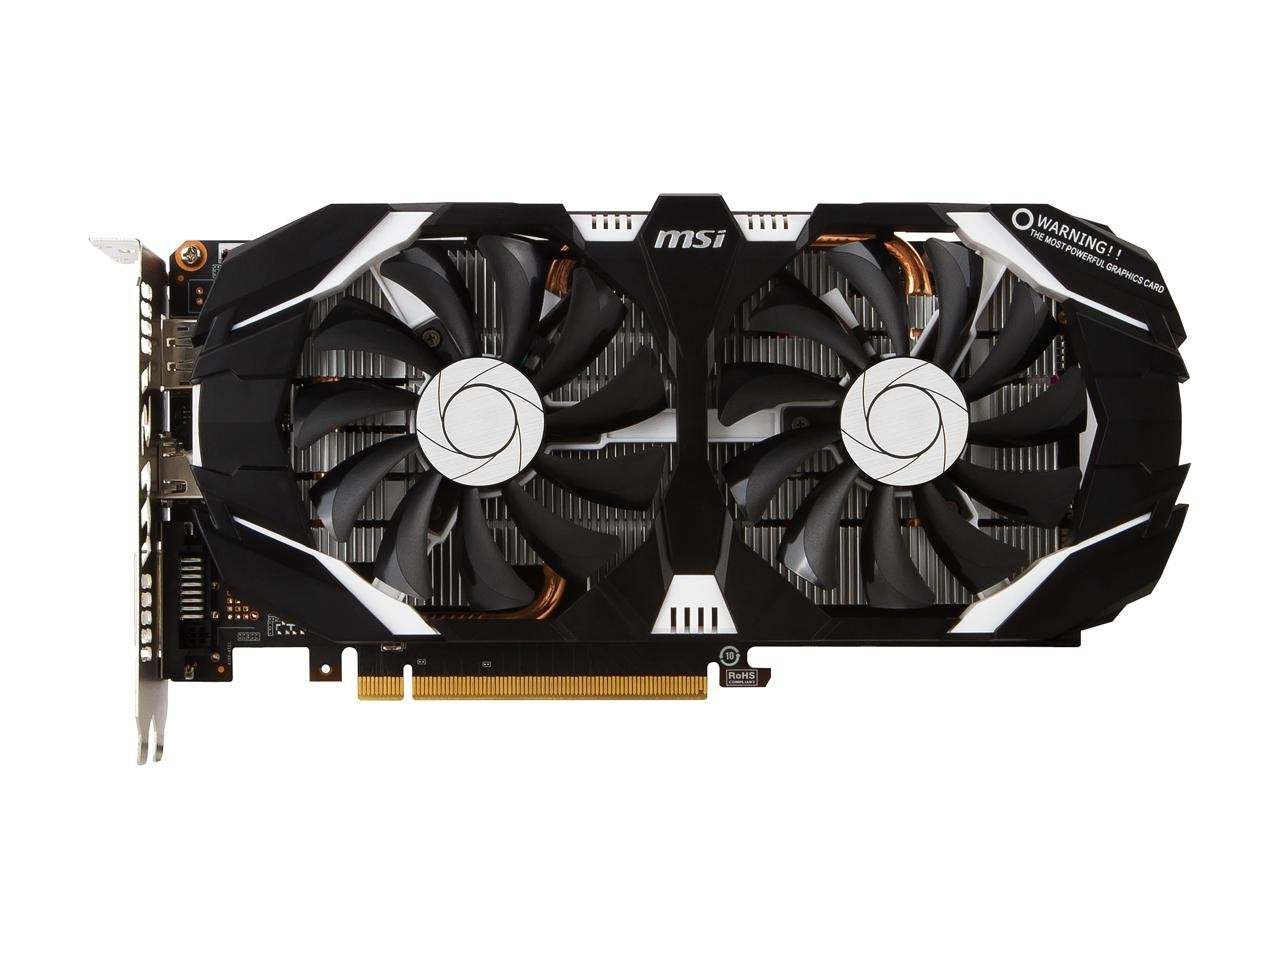 MSI GeForce GTX 1060 6GB GDDR5 Dual Fan